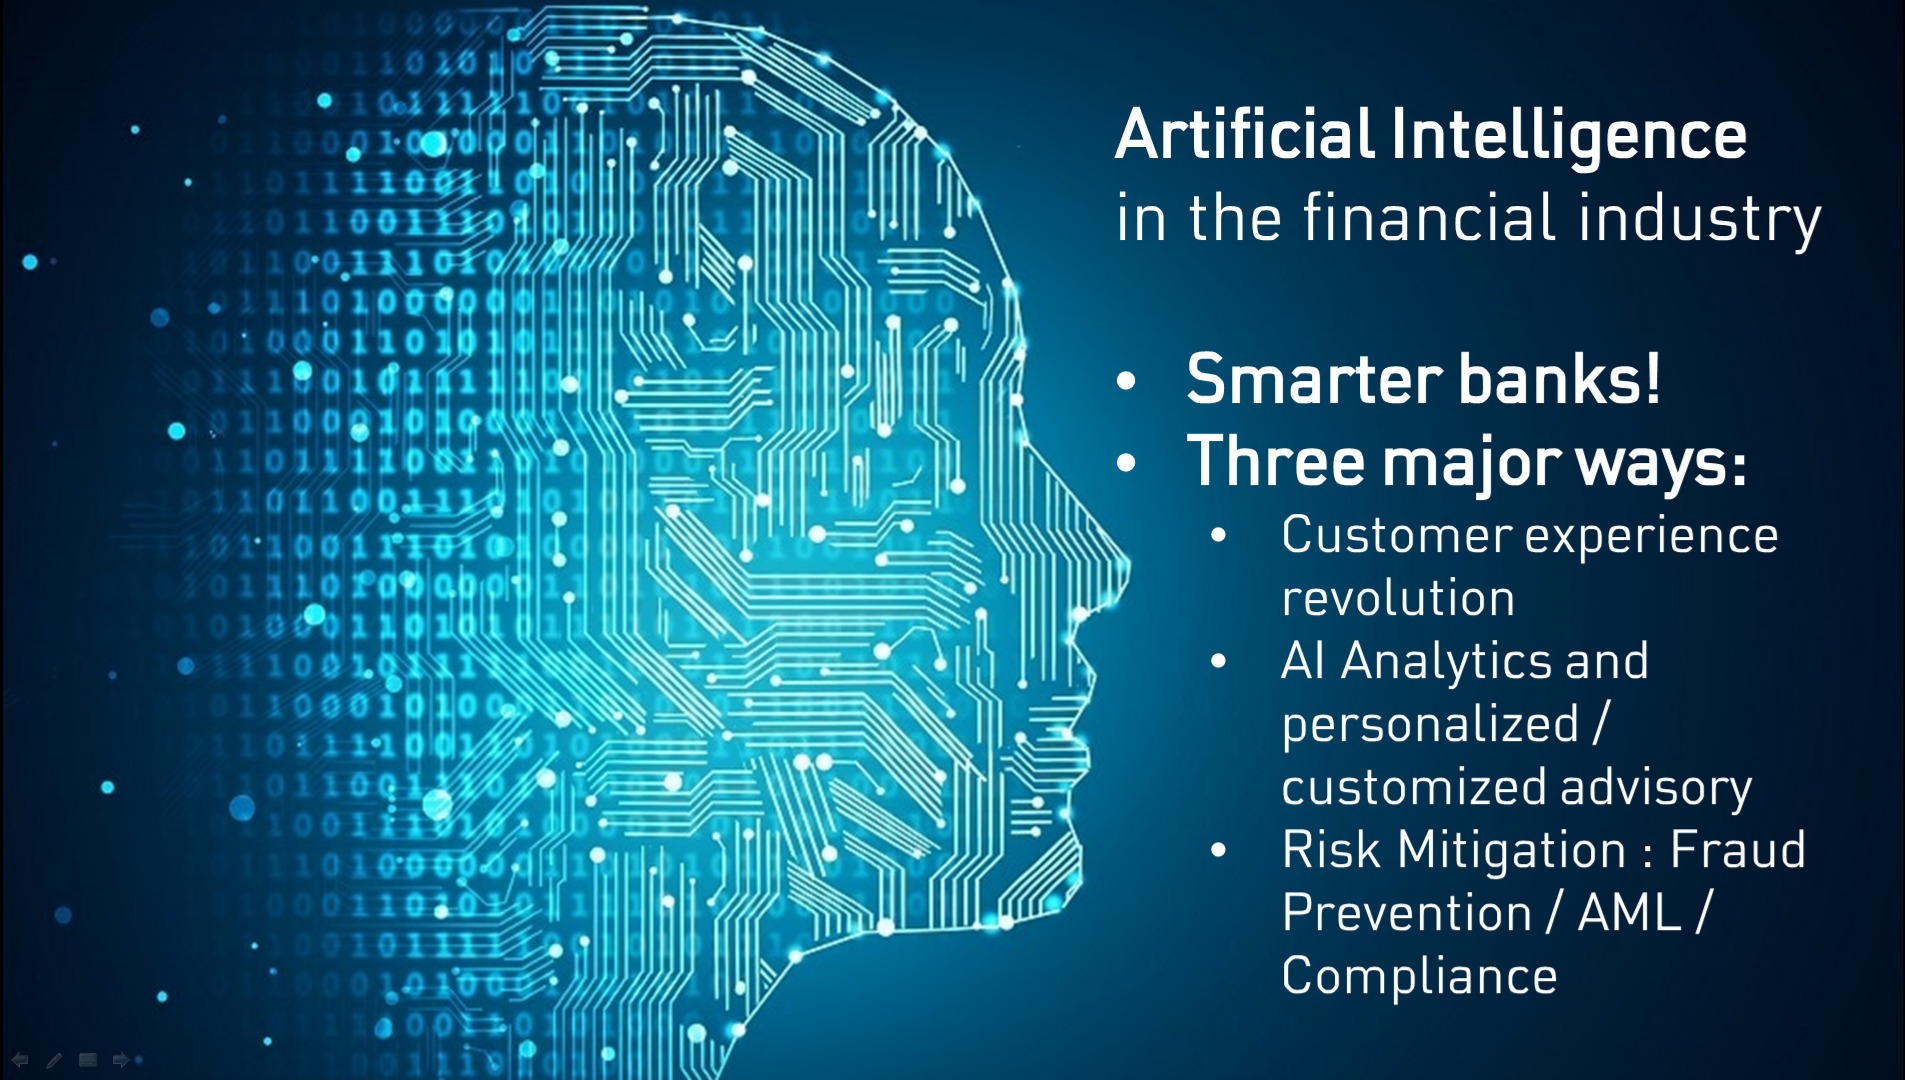 Artificial Intelligence in the Financial Industry